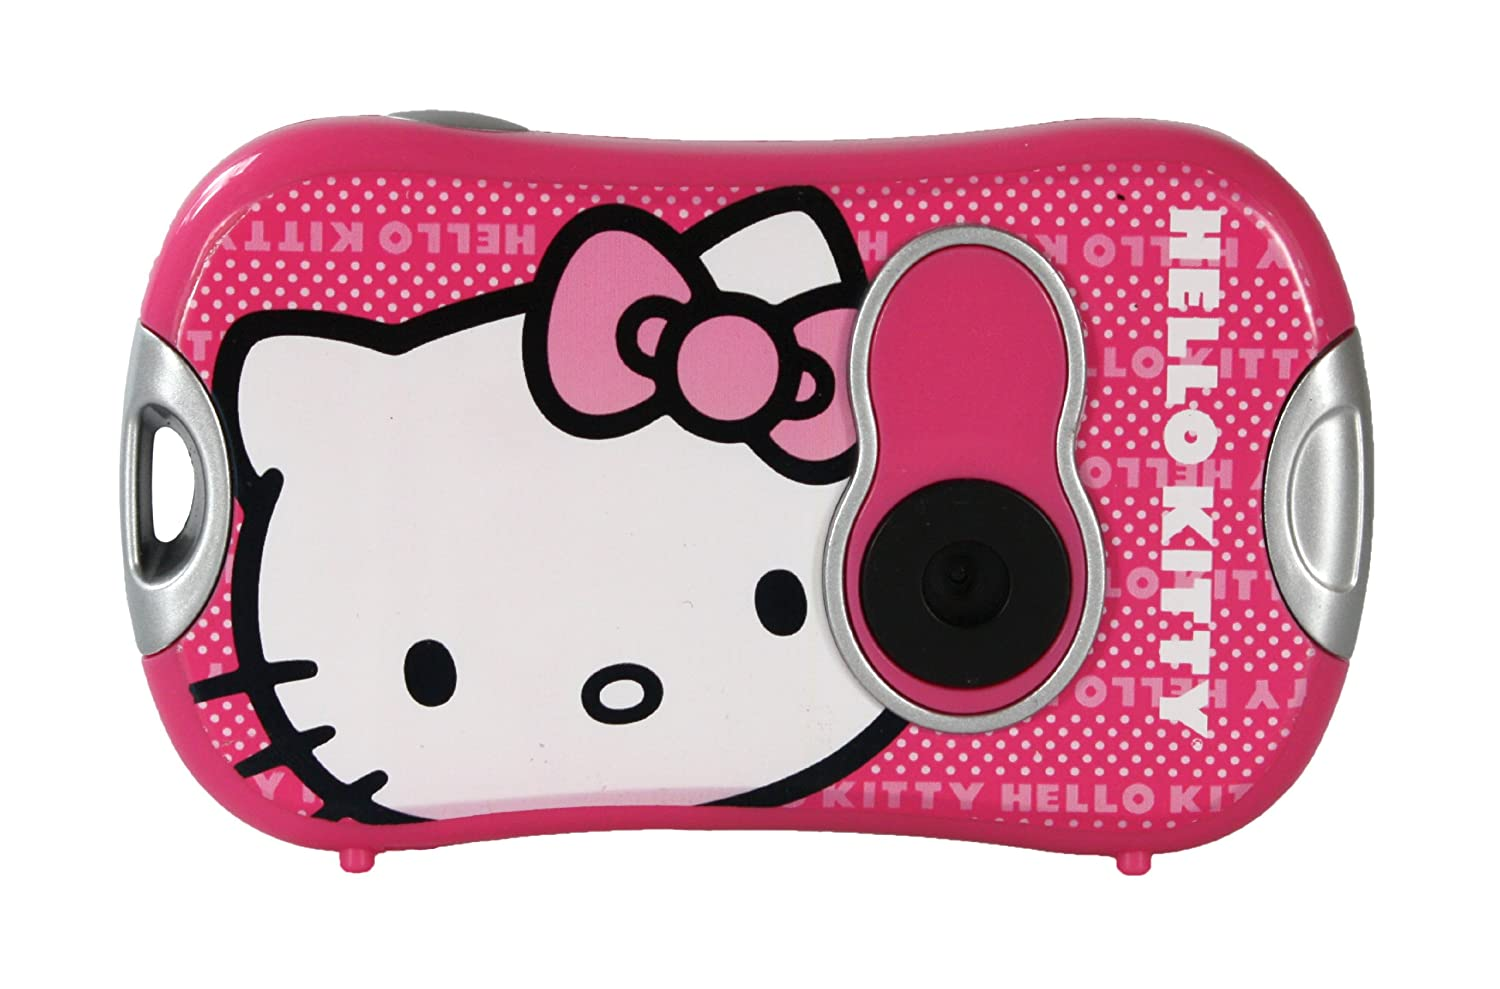 HELLO KITTY 92009 1.1-inch VGA Digital Camera Kit